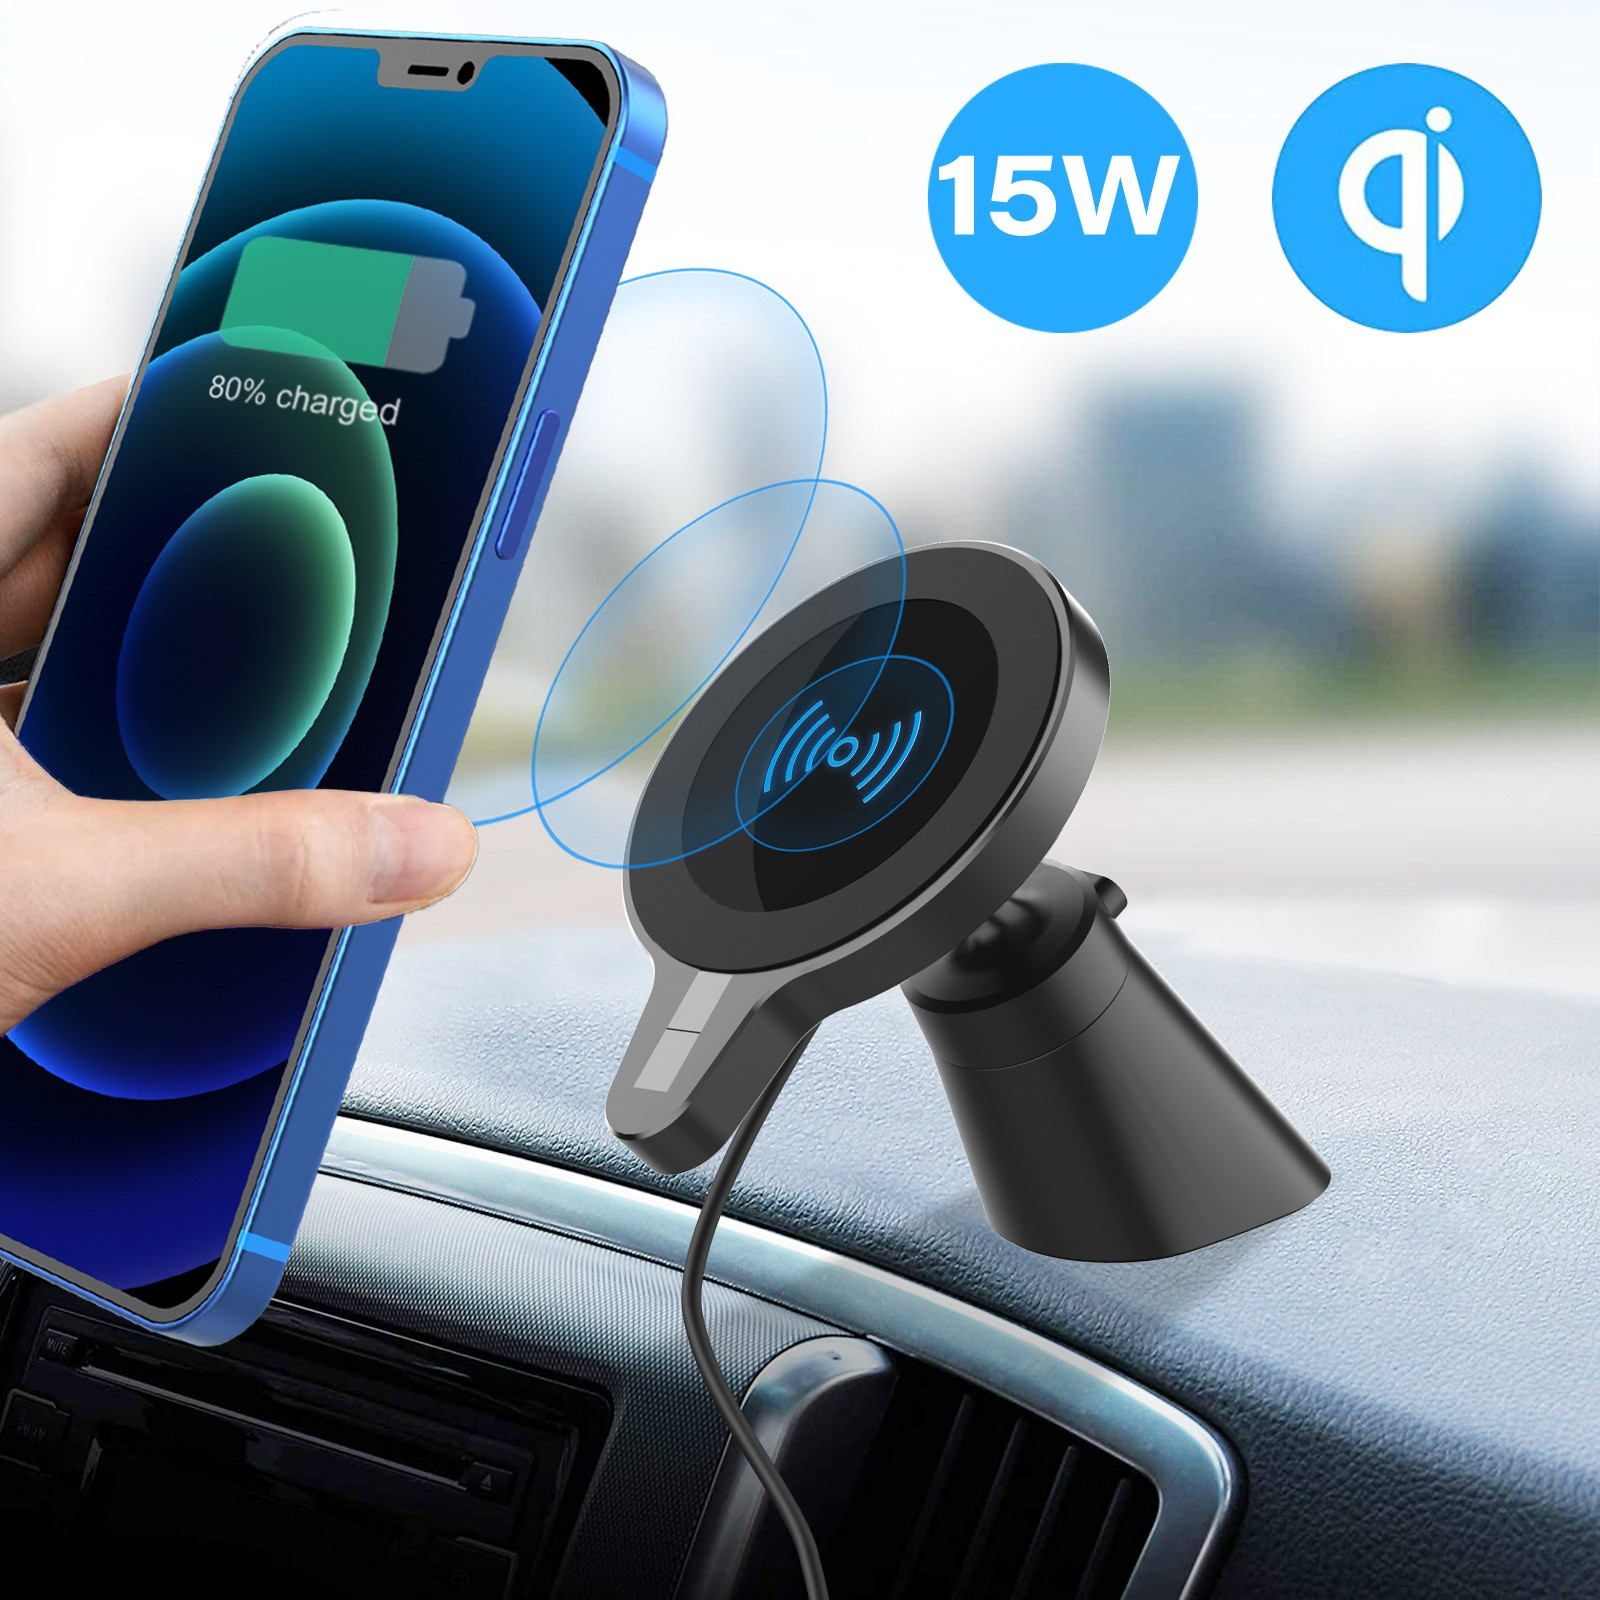 WH-22 Car Wireless Charger Mobile Phone Bracket for iPhone 12 Series - Black